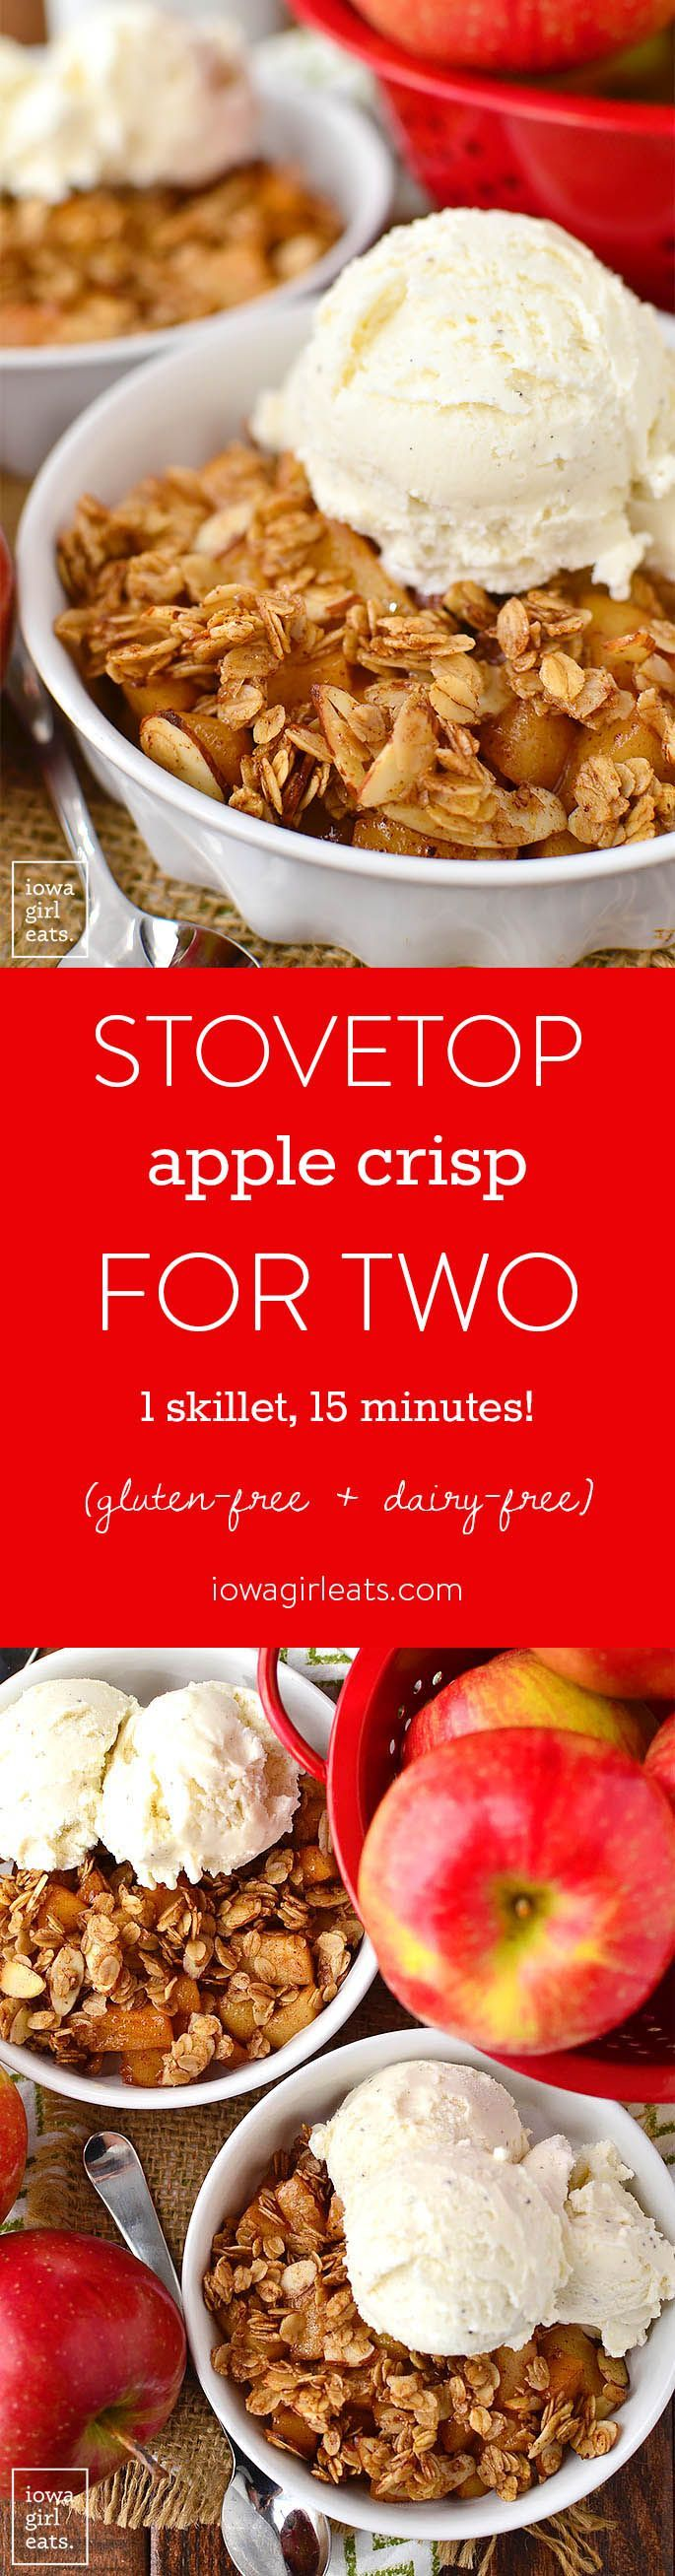 Stovetop Apple Crisp for Two is for when you're craving apple crisp, but don't want to make a big batch that has to bake for an hour. Just 1 skillet and 15 minutes is all you need!   iowagirleats.com